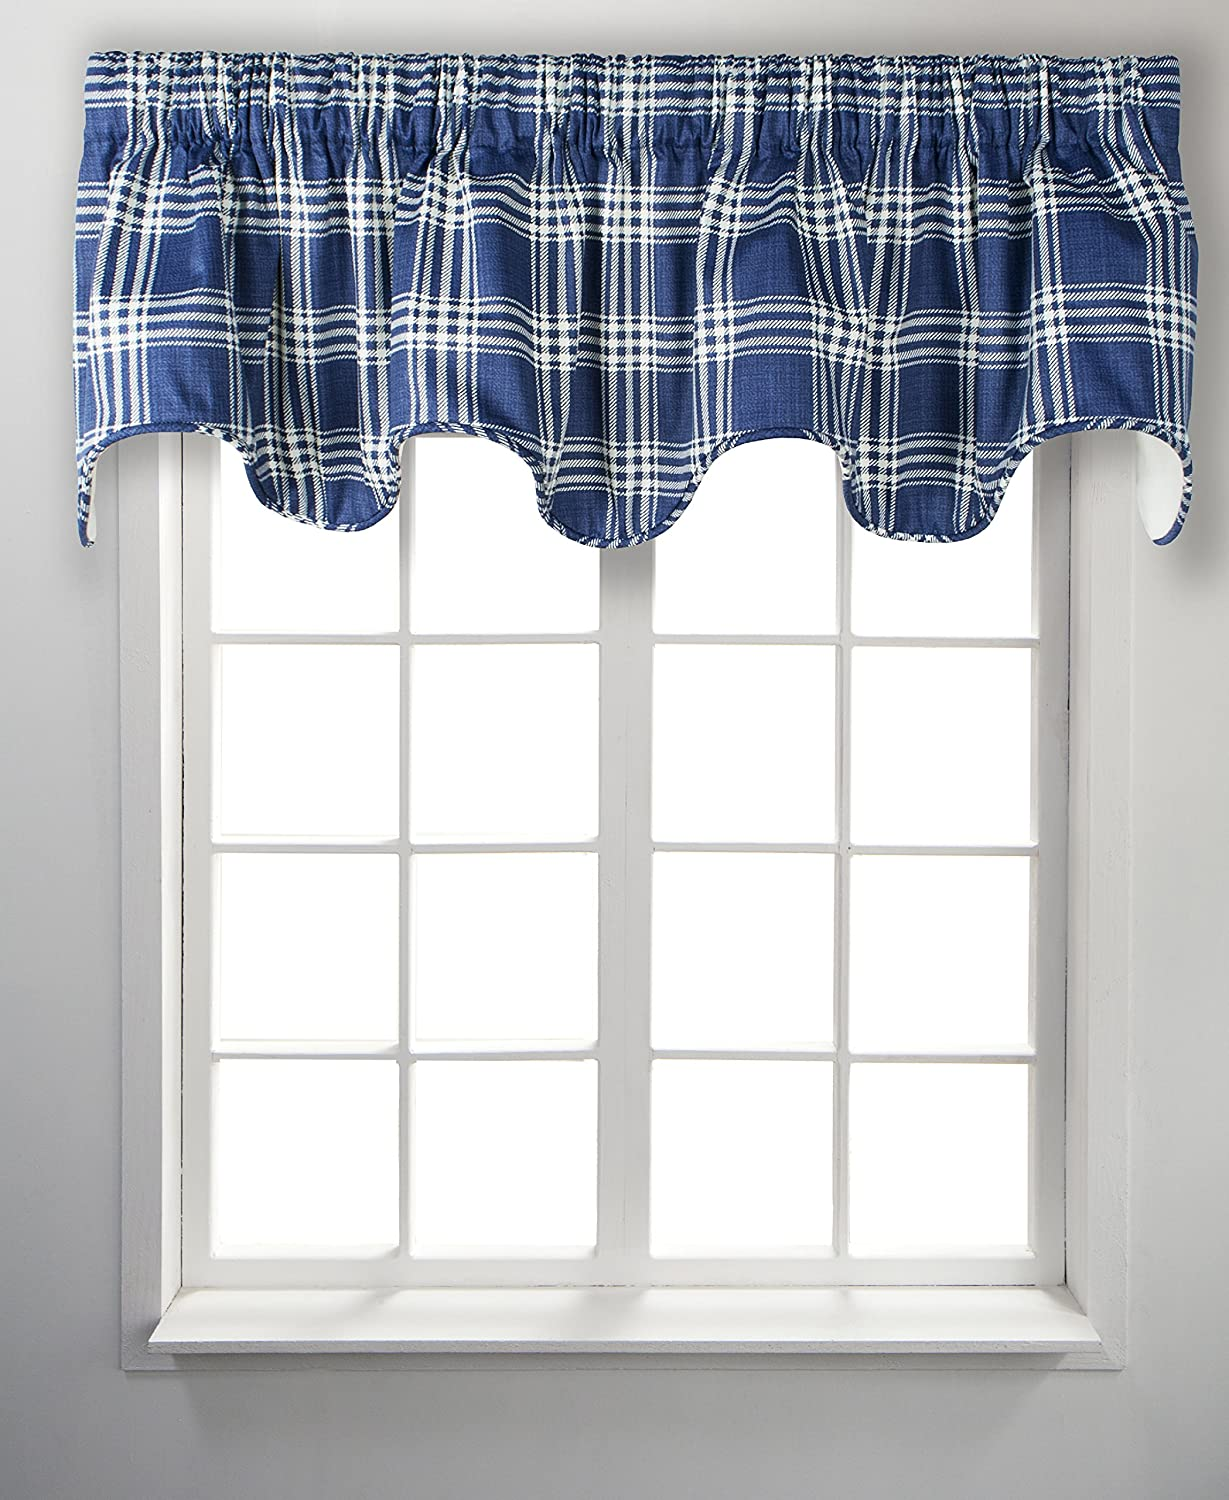 Ellis Curtain Bartlett Plaid Deep Scallop Valance Lined 70 Inches Wide x 17 Inches Deep Grey 730462137838